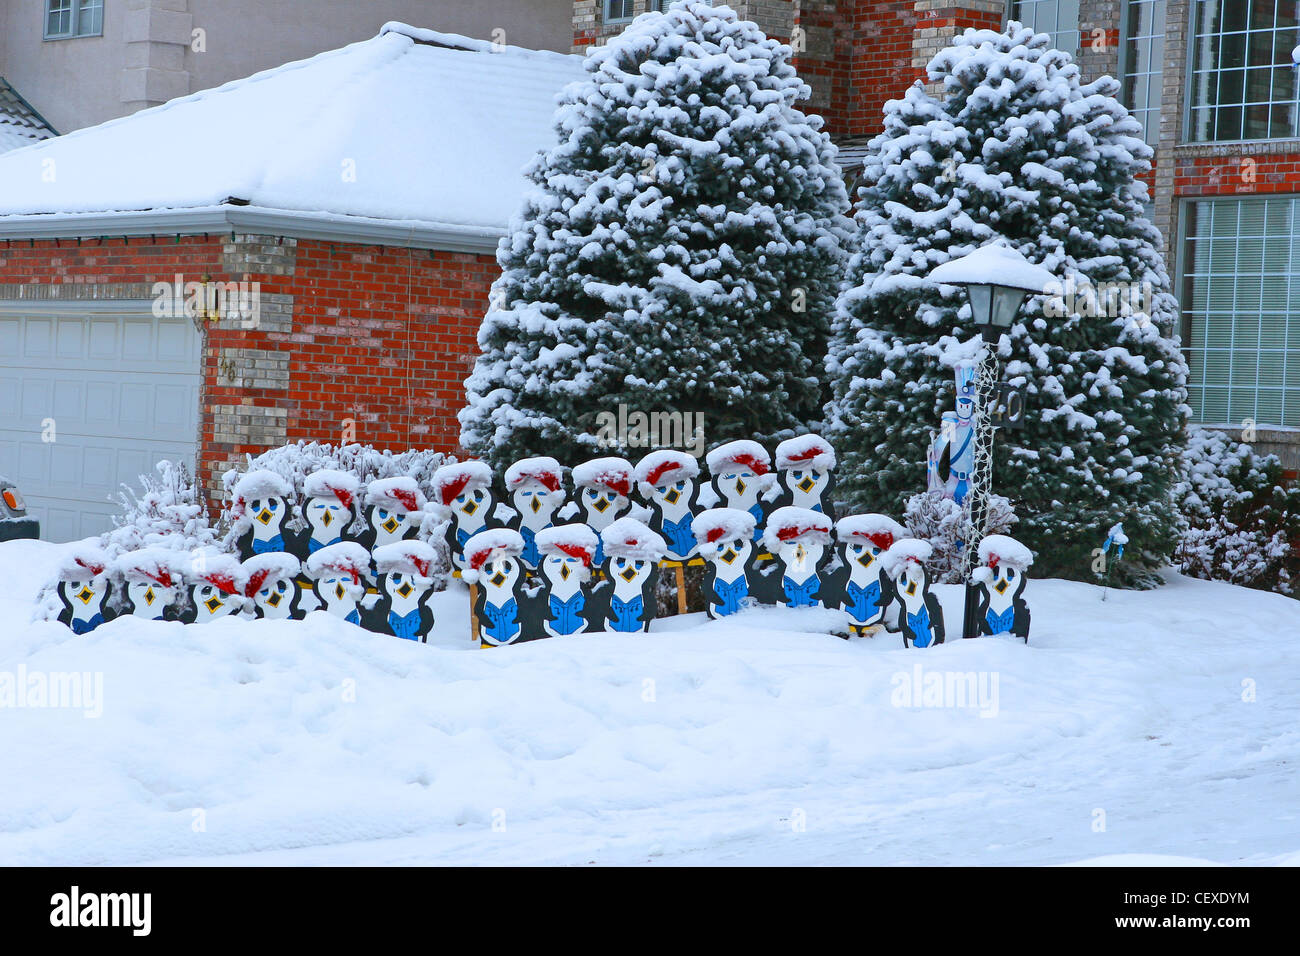 Christmas In Calgary Canada.Winter Scenes From Calgary Alberta Canada Choristers At